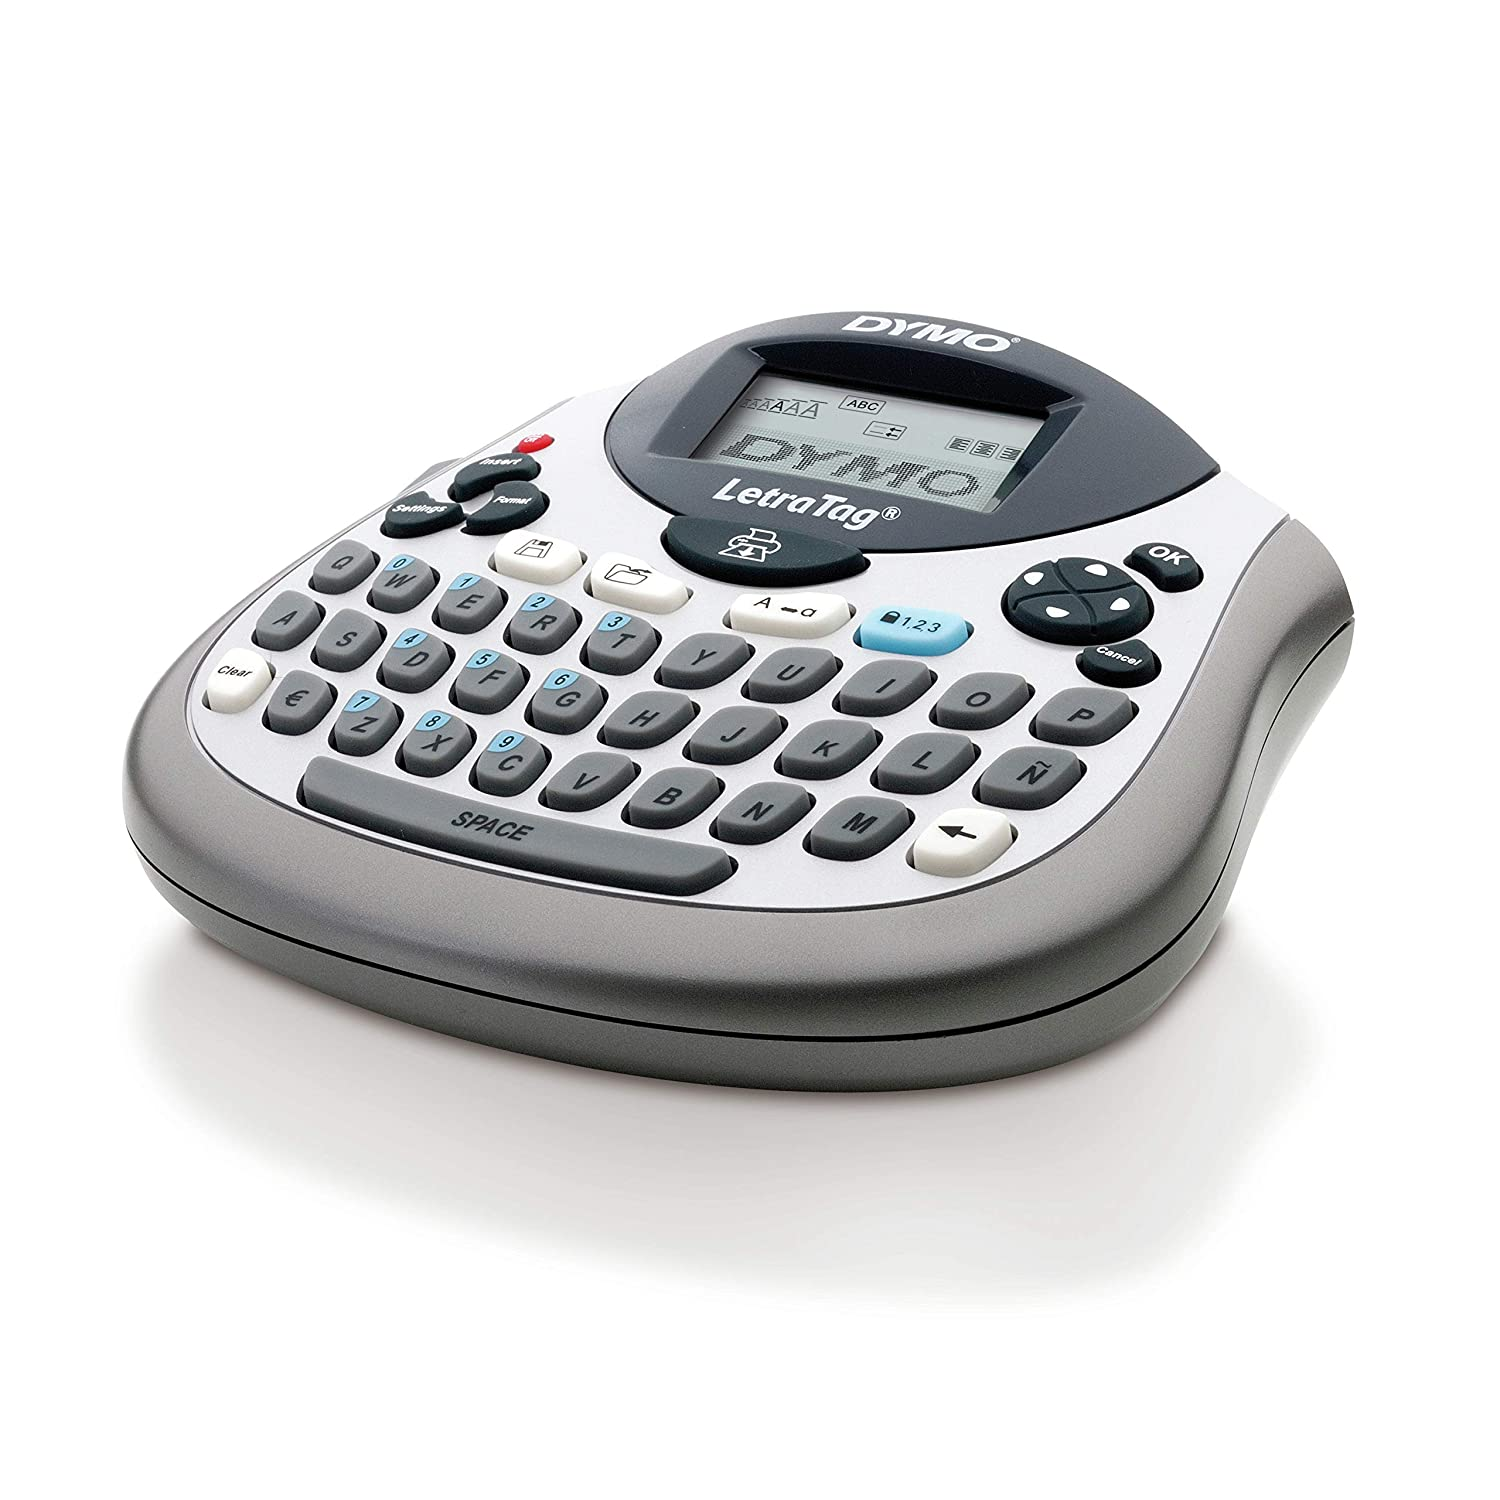 Nordic Text on Packaging Dymo Letratag LT-100T QWERTY Label Maker Plus Tape